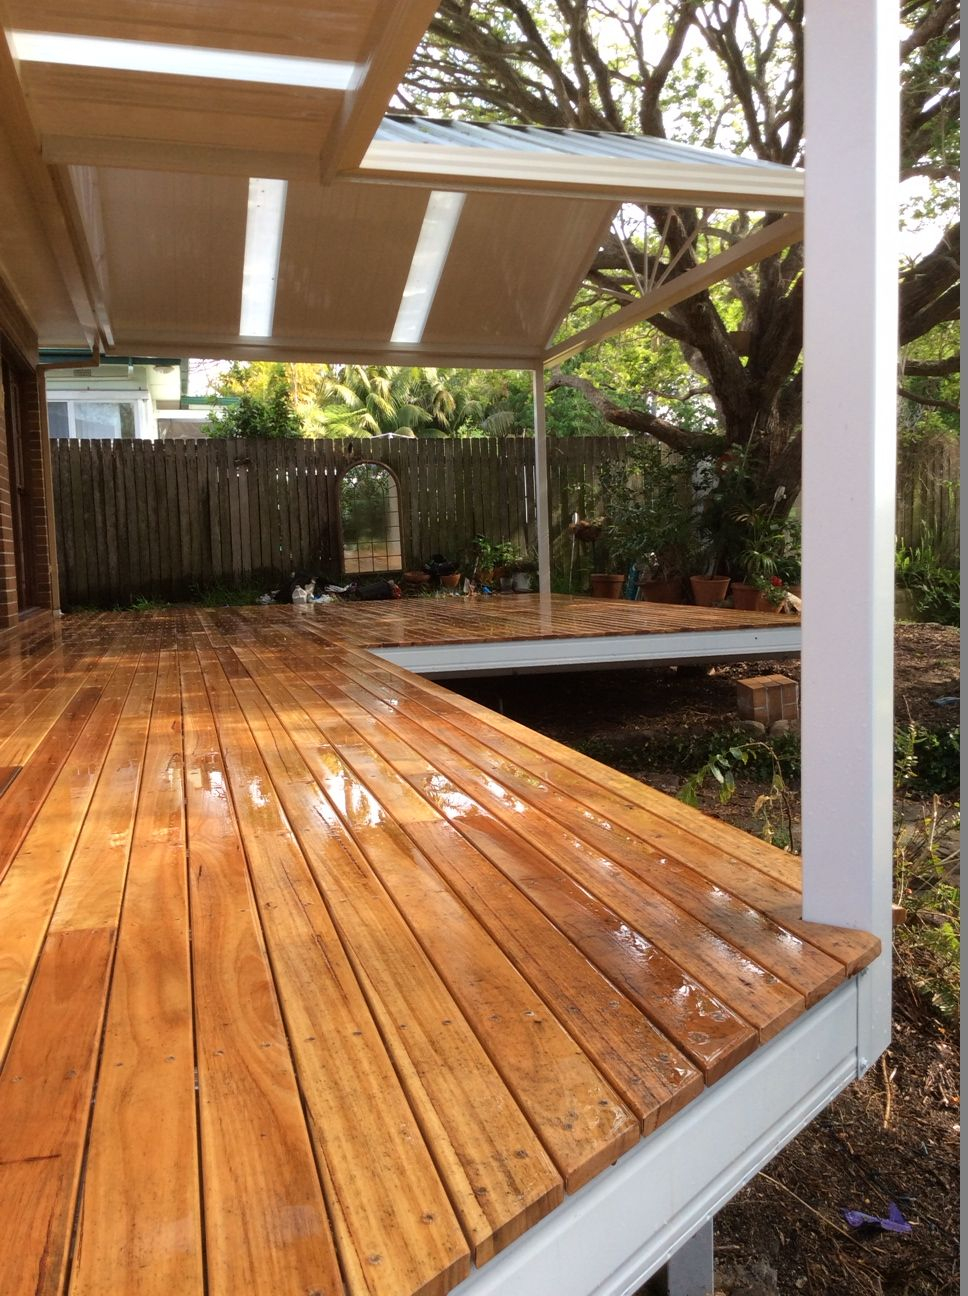 Spantec Boxspan Steel Frame Deck With Timber Decking Boards Over intended for size 968 X 1296